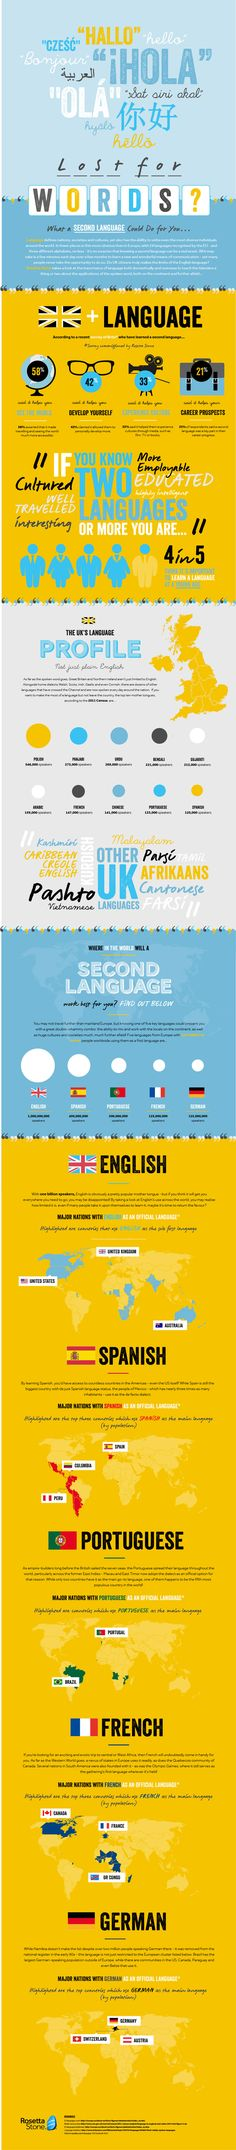 What can a second language do for you infographic